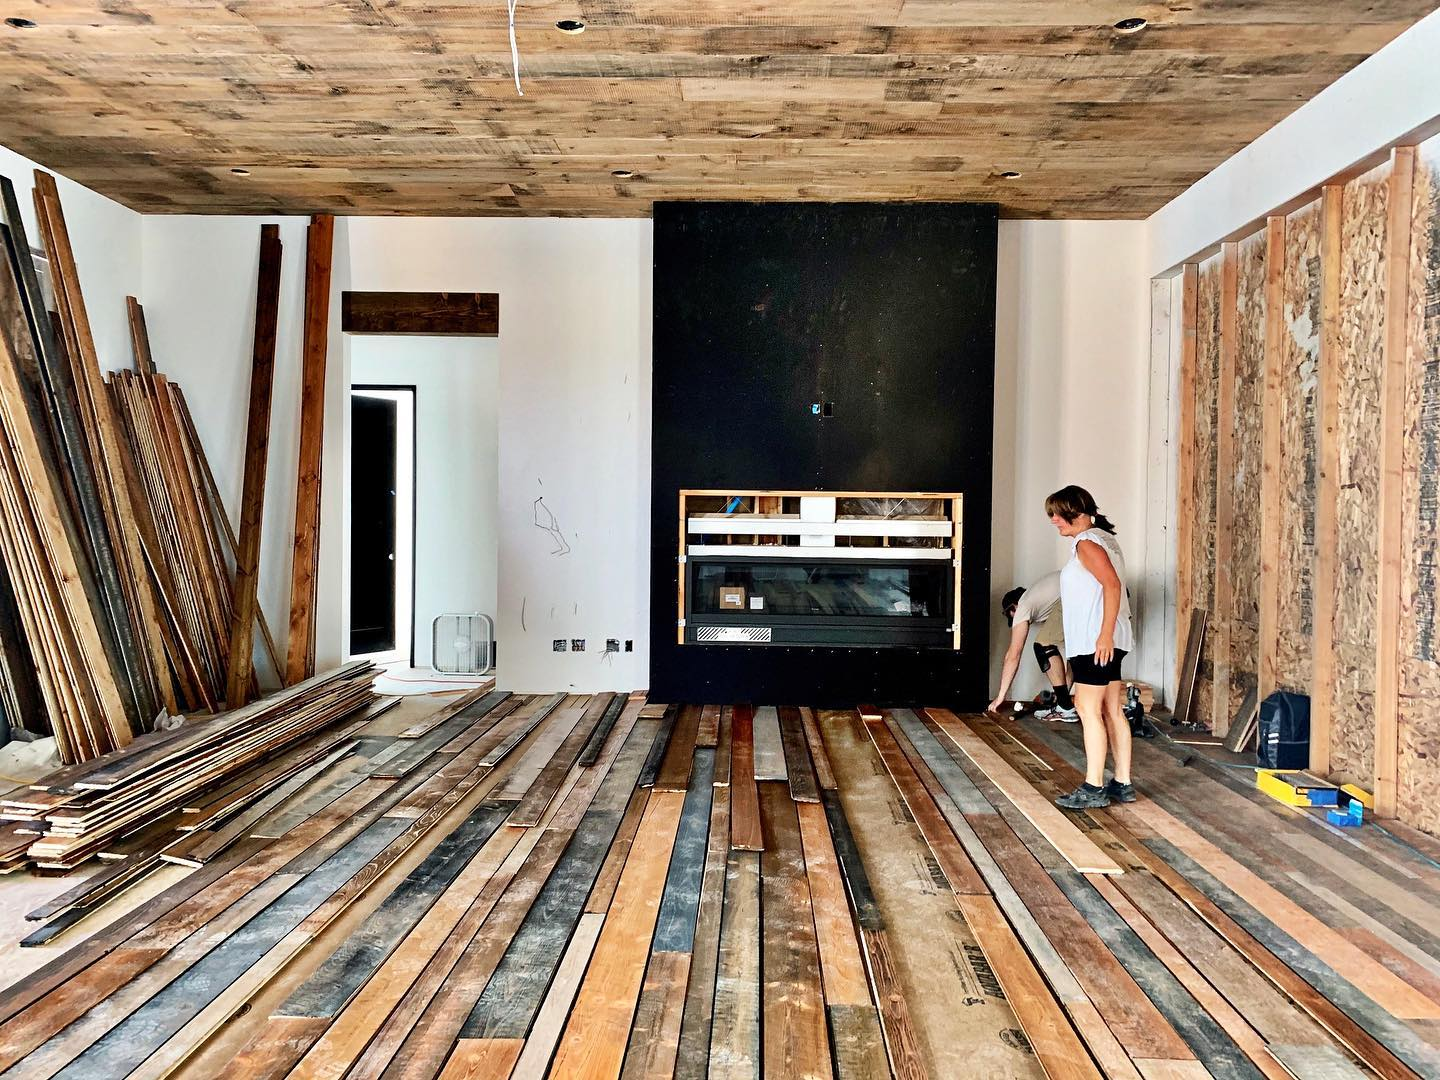 """It's always hard to post an """"in progress photo"""" but I am so excited about this floor! In 3 days our little team, including the homeowner) stained 3,000 square feet. It's going to be a show piece!! whitefish custom home builder"""